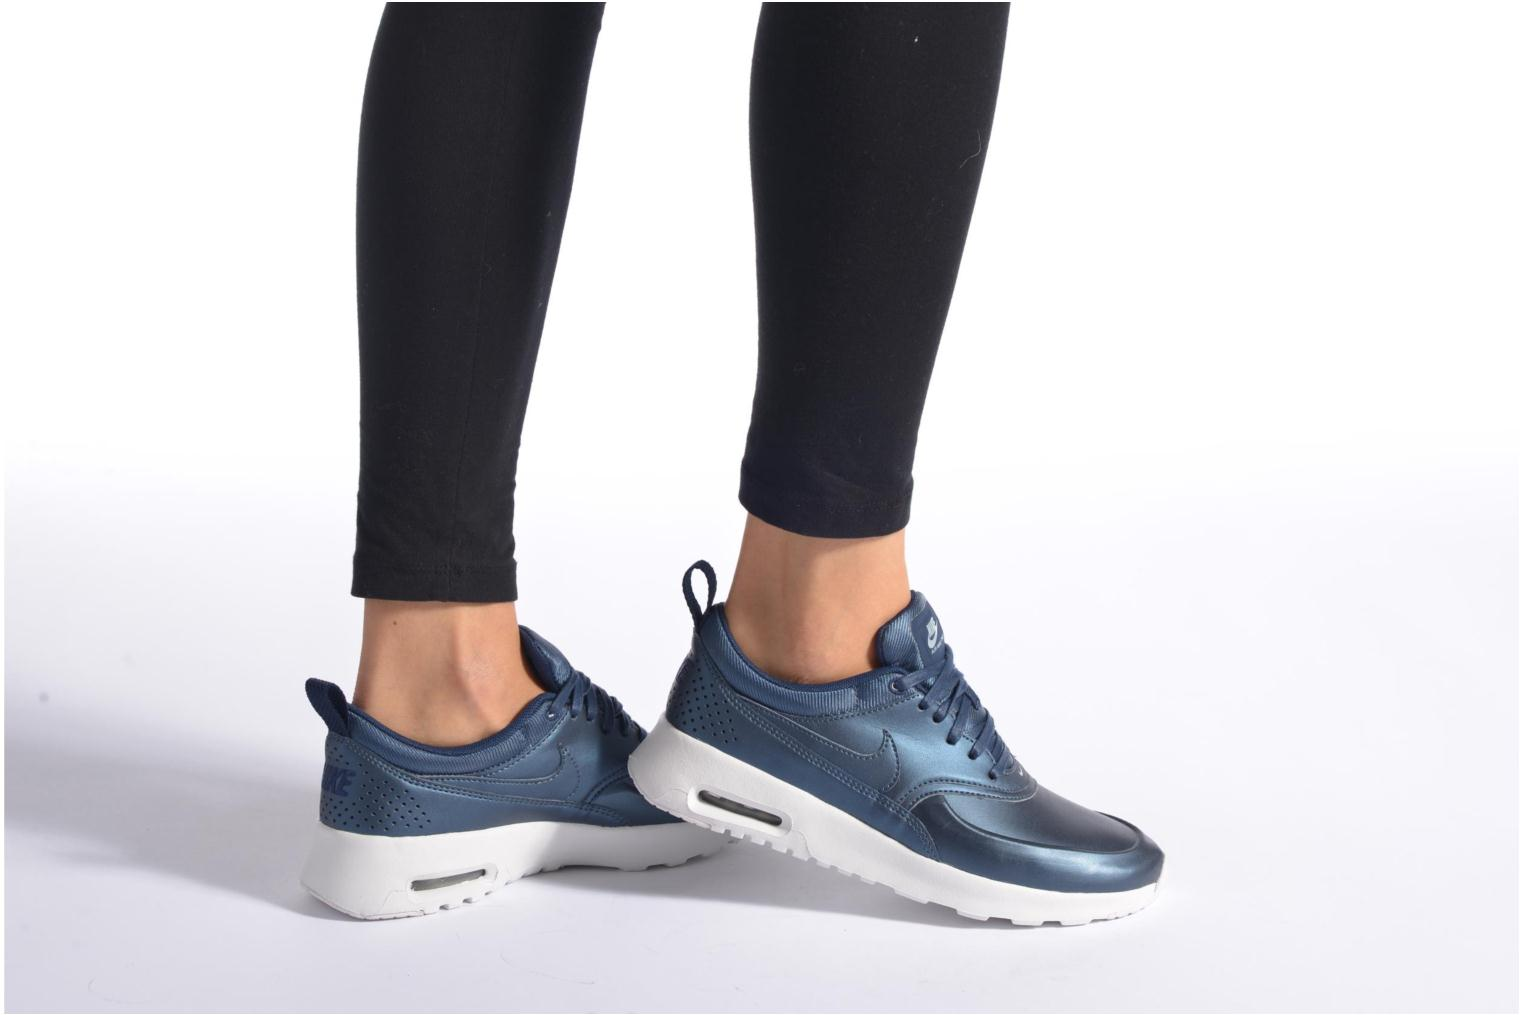 W Nike Air Max Thea Se Mtlc Armory Nvy/Mtlc Armory Nvy